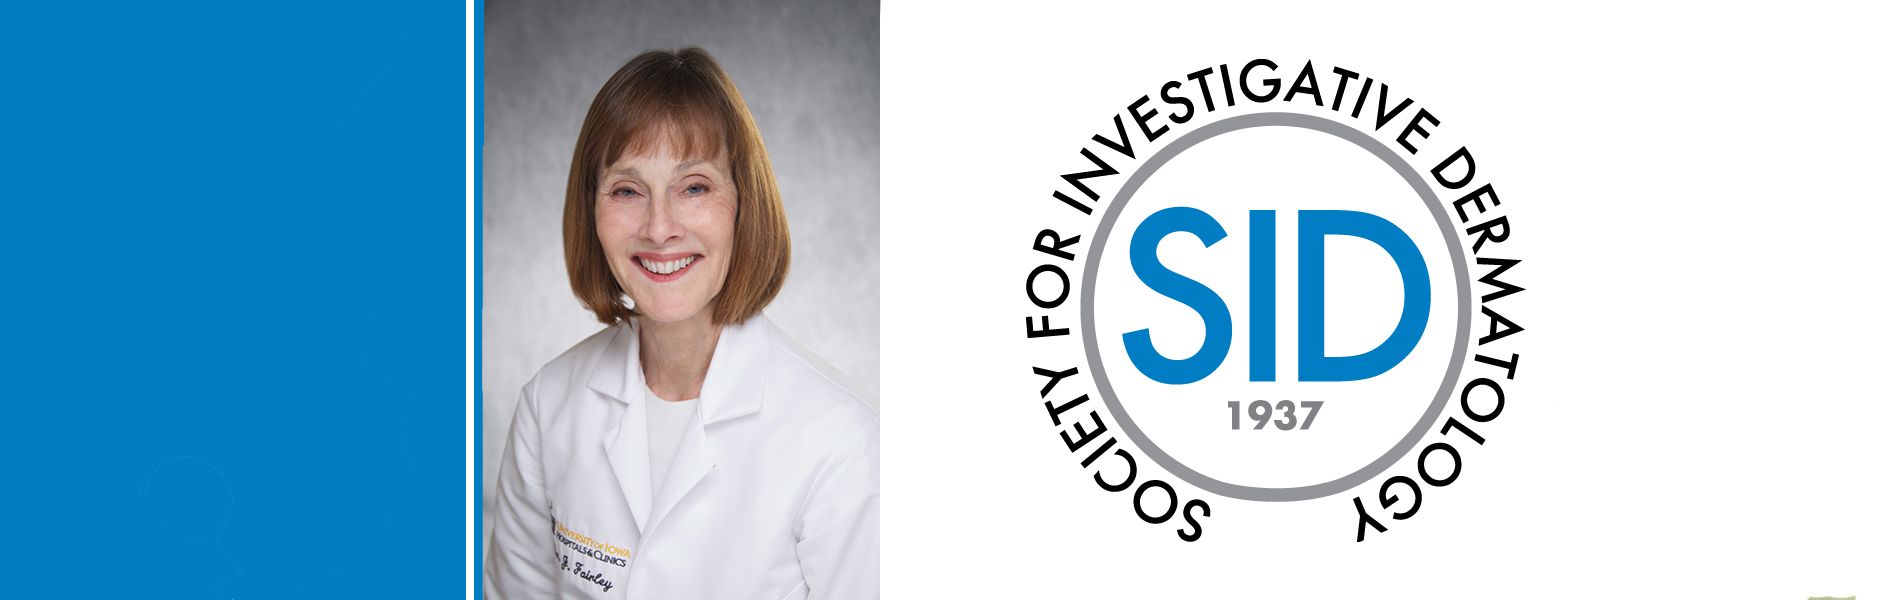 Dr. Fairley named President of the Society for Investigative Dermatology